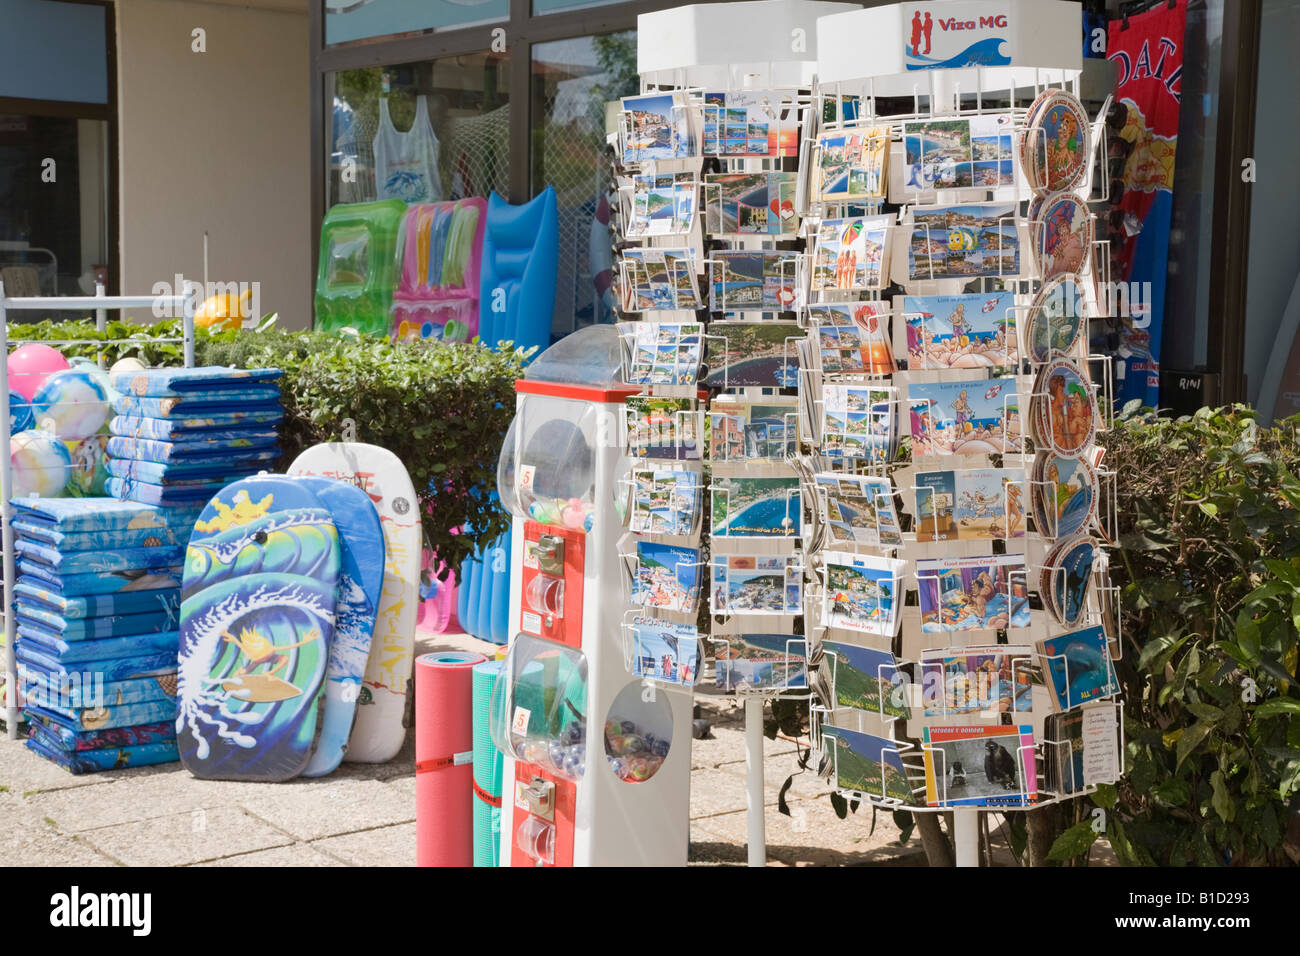 Croatia Europe. Shop selling postcards on display stand outside and seaside goods - Stock Image